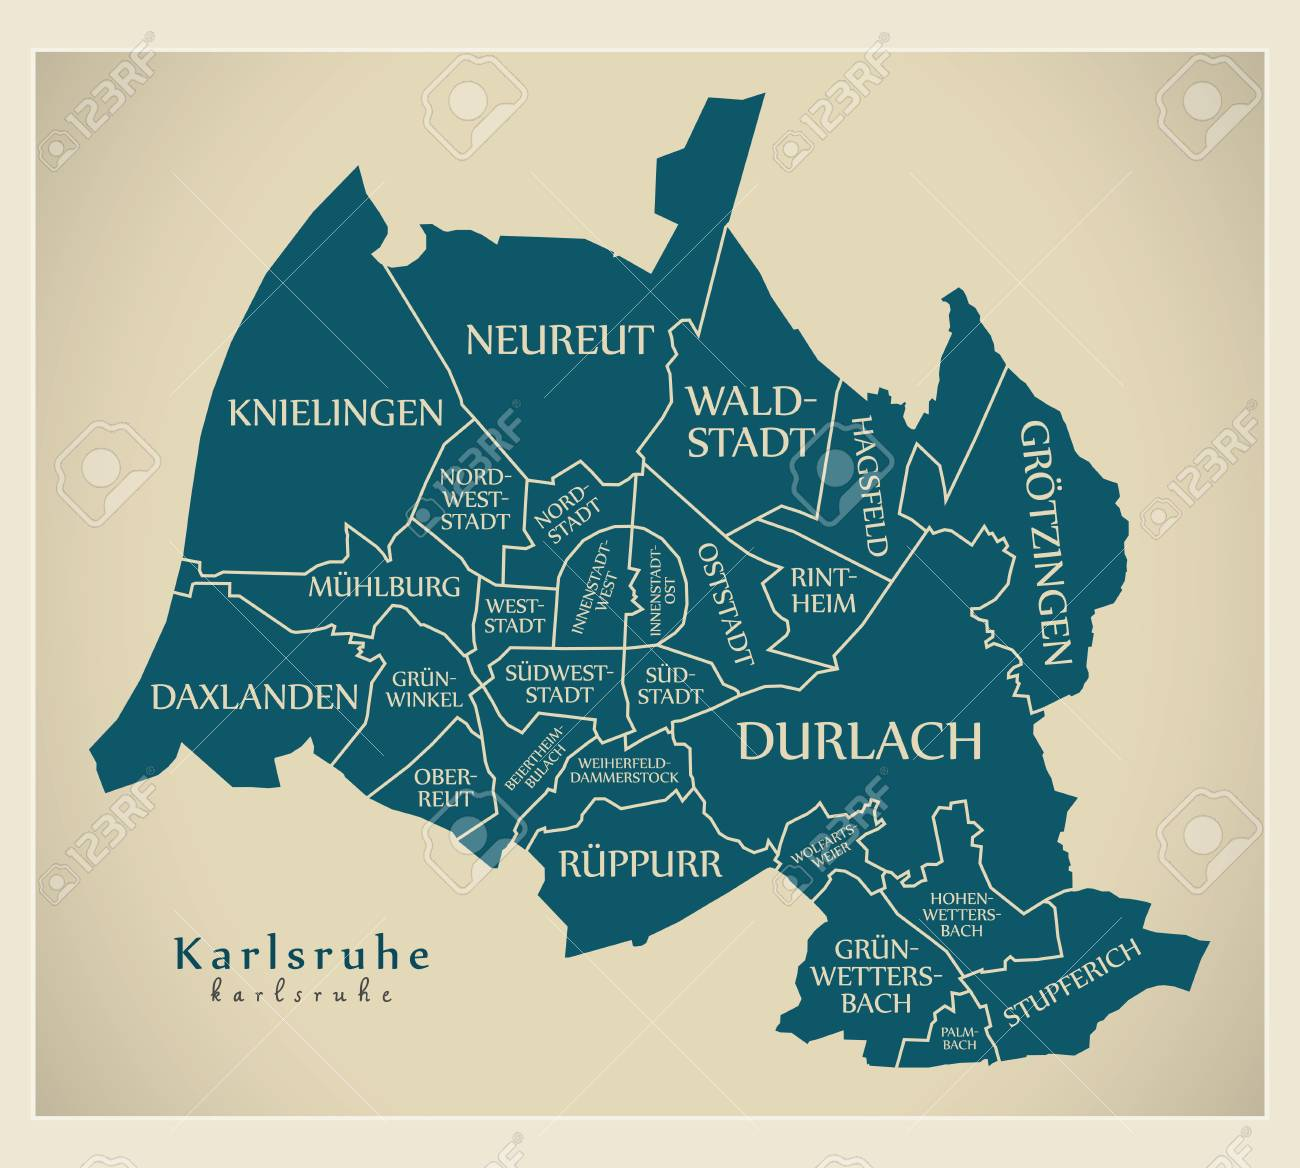 Modern City Map Karlsruhe City Of Germany With Boroughs And